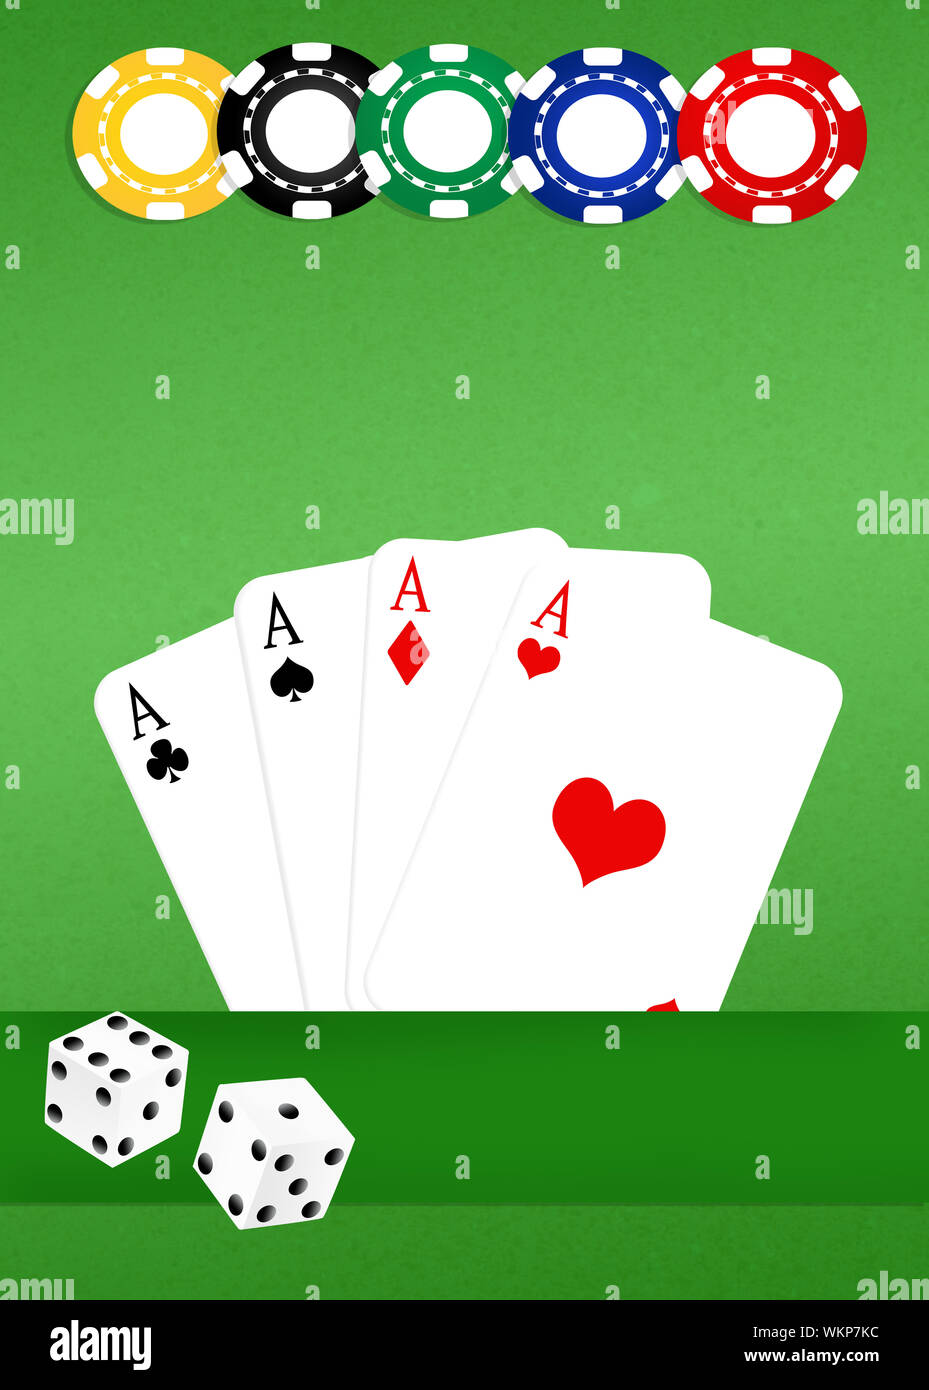 casino online games play